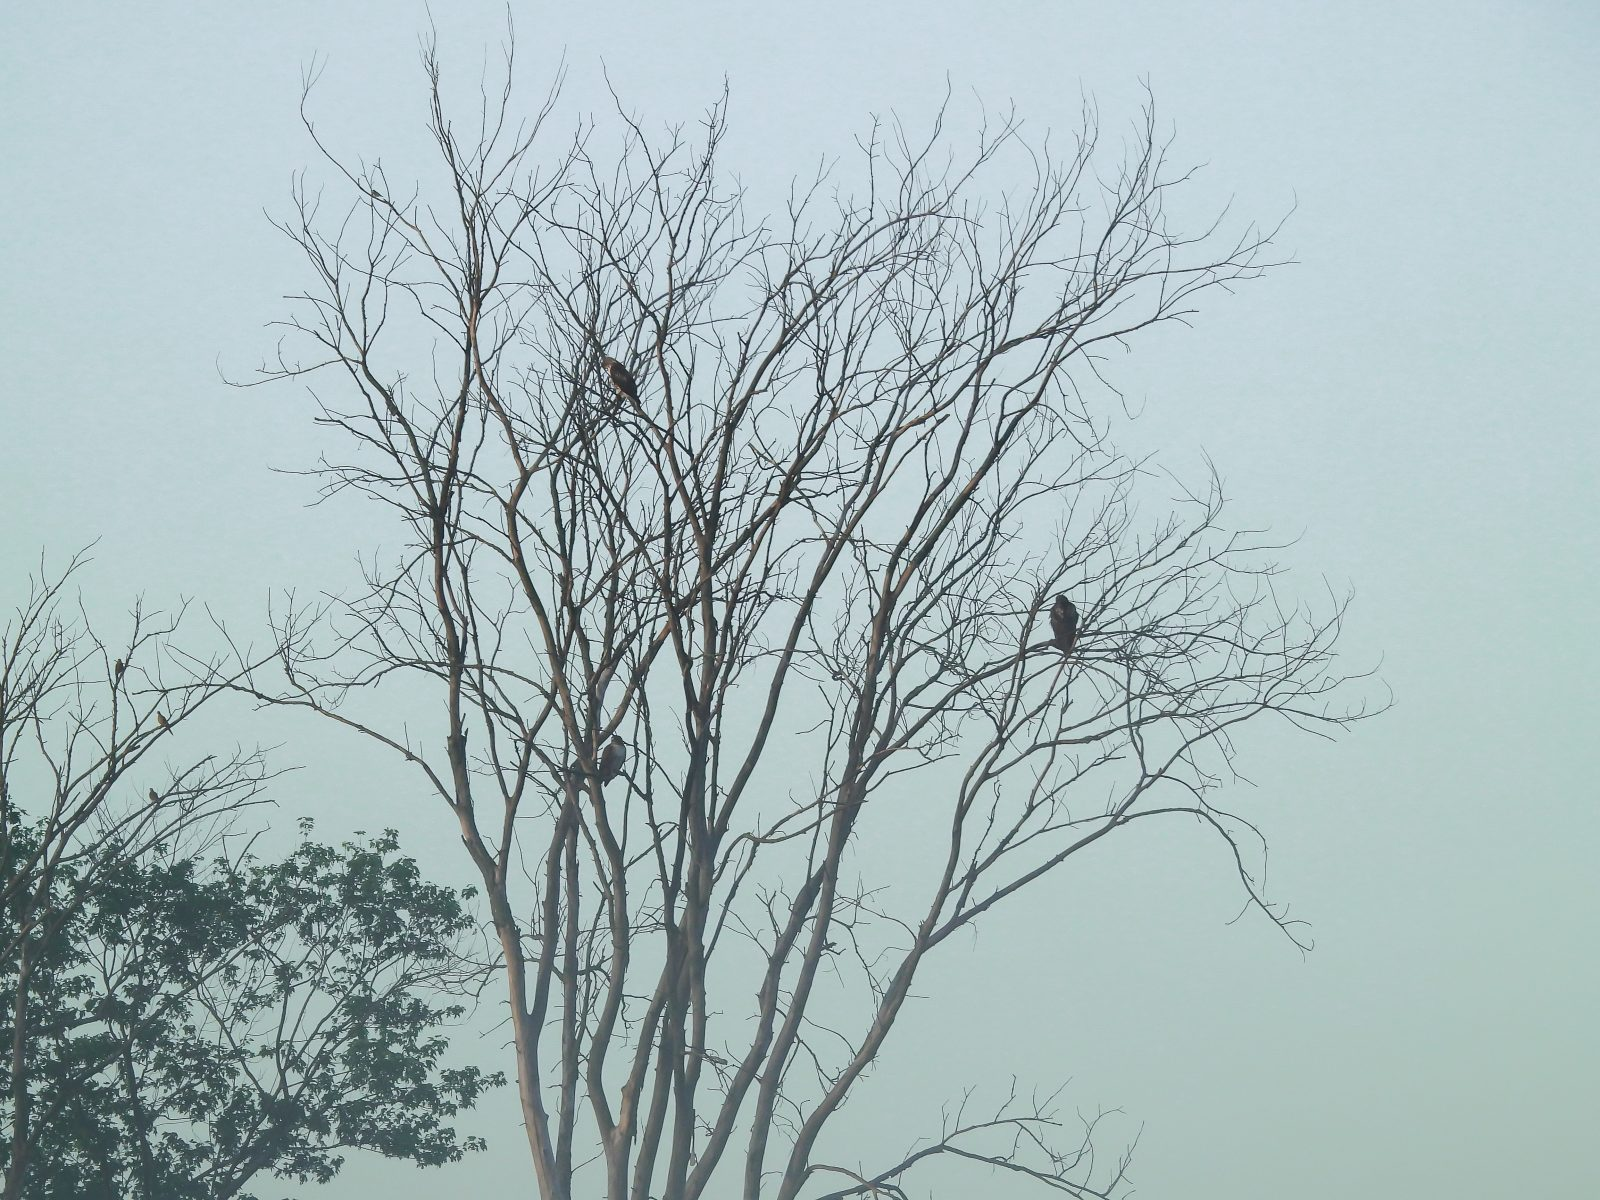 Three Red-Tailed Hawks in a Bare Tree at Sunrise